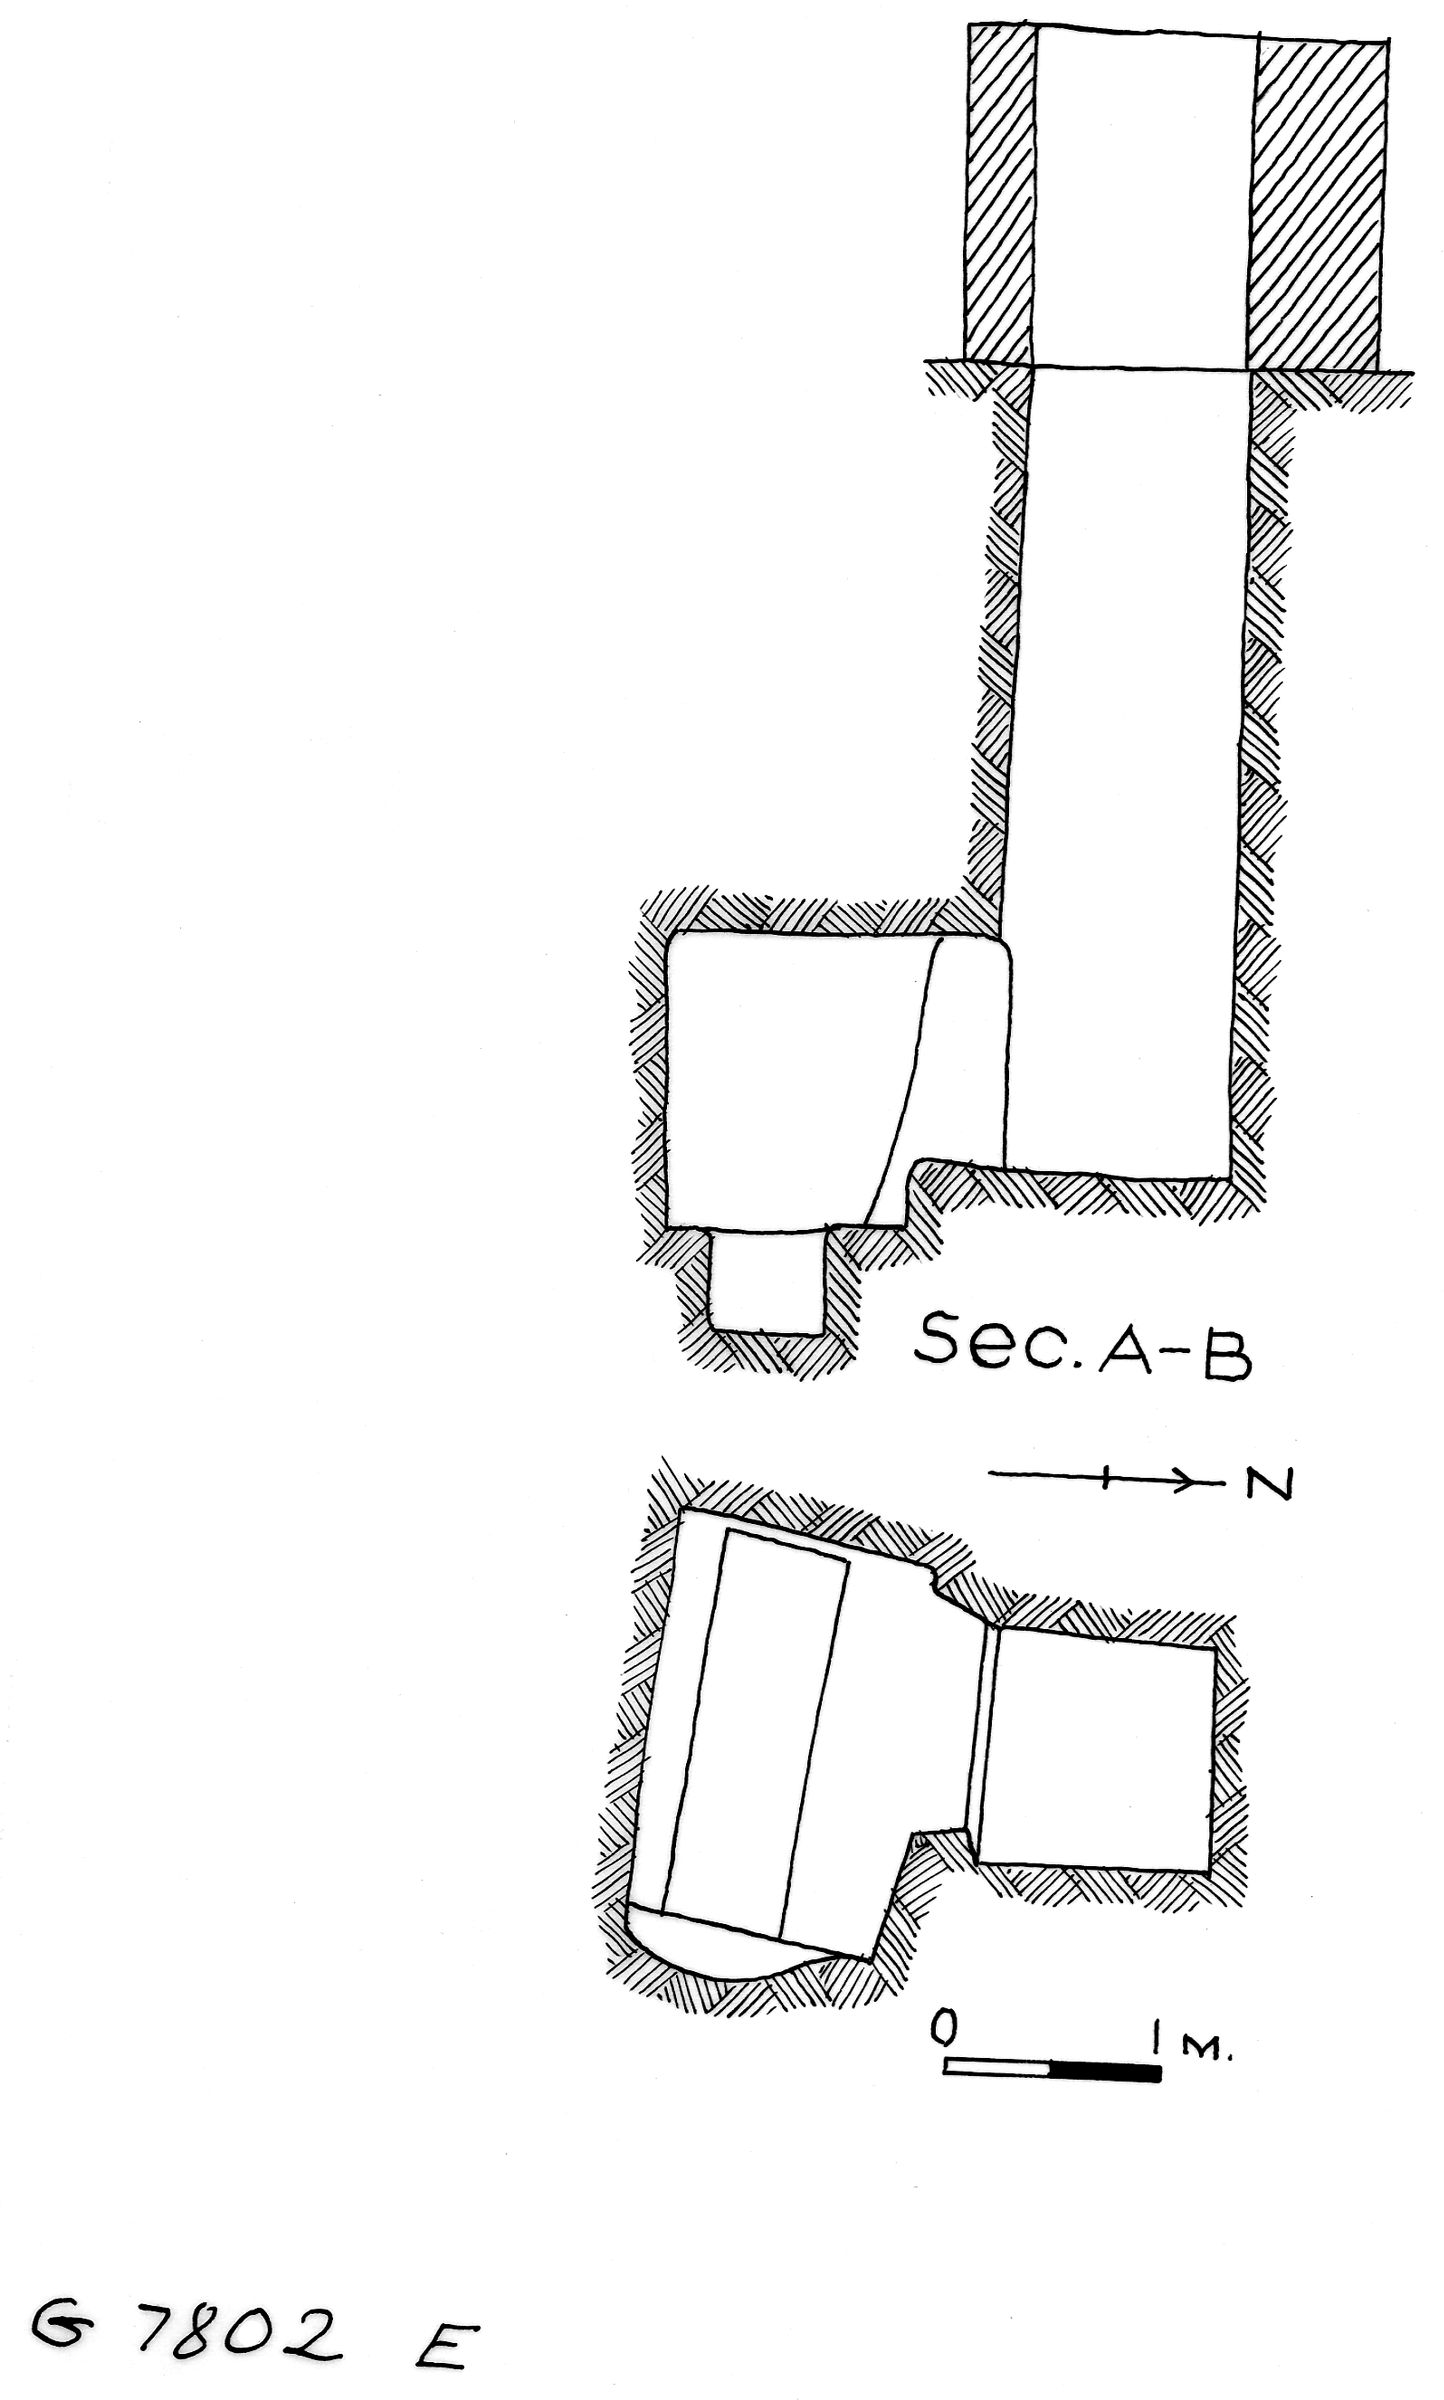 Maps and plans: G 7802, Shaft E